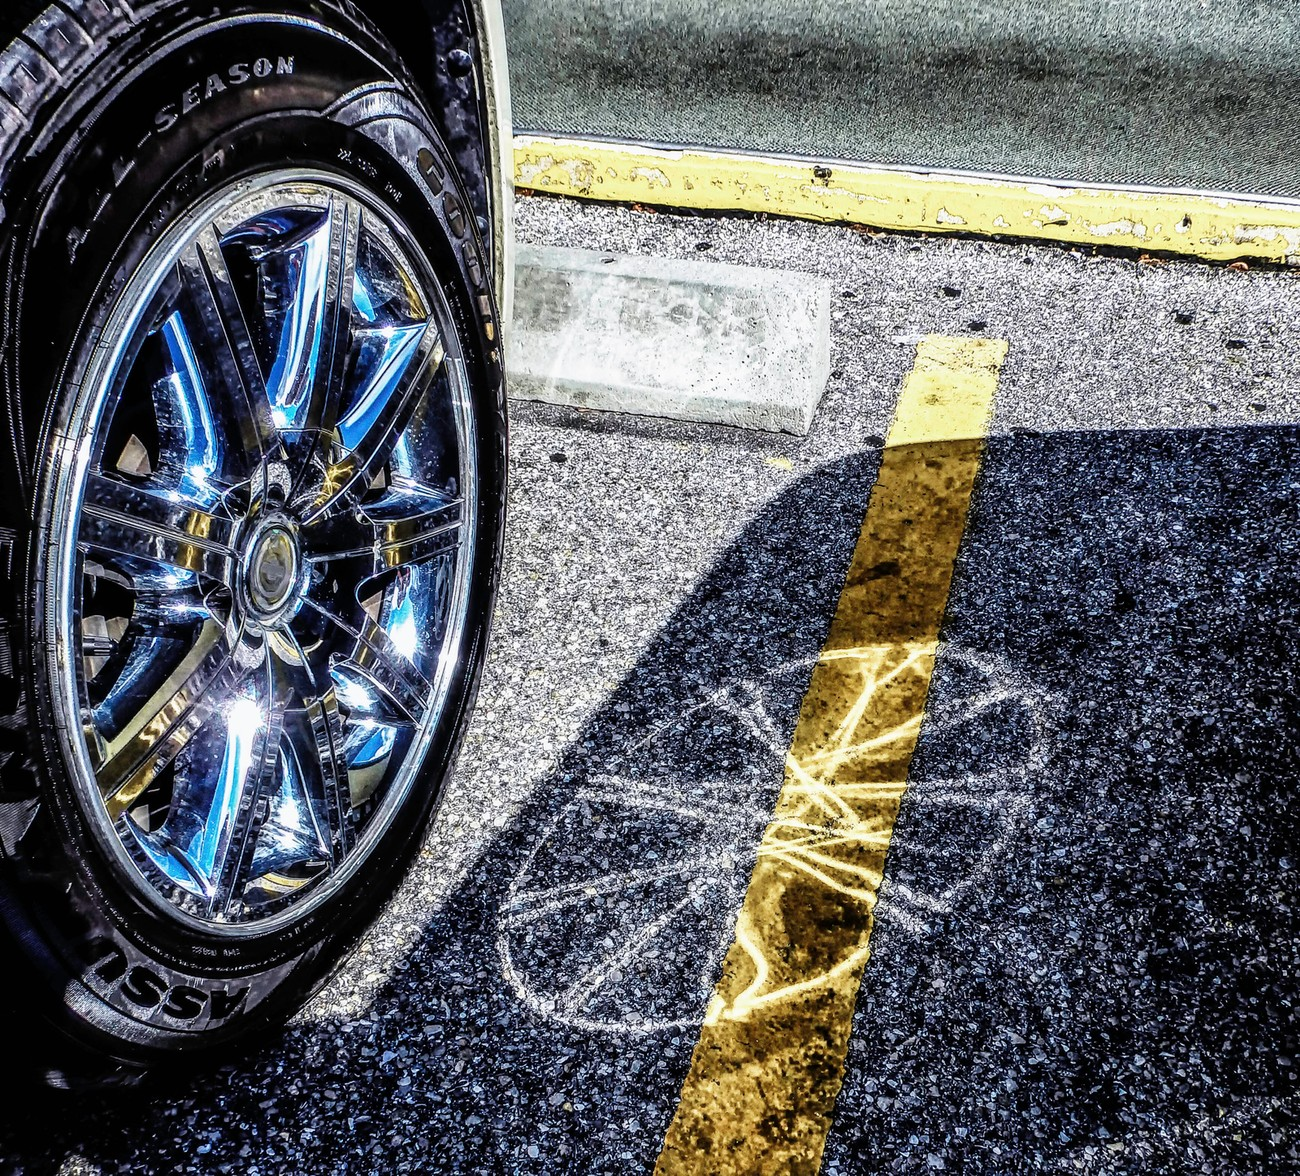 Wonderful reflection on the wet parking lot surface.the yellow lines added just the right amount of color.